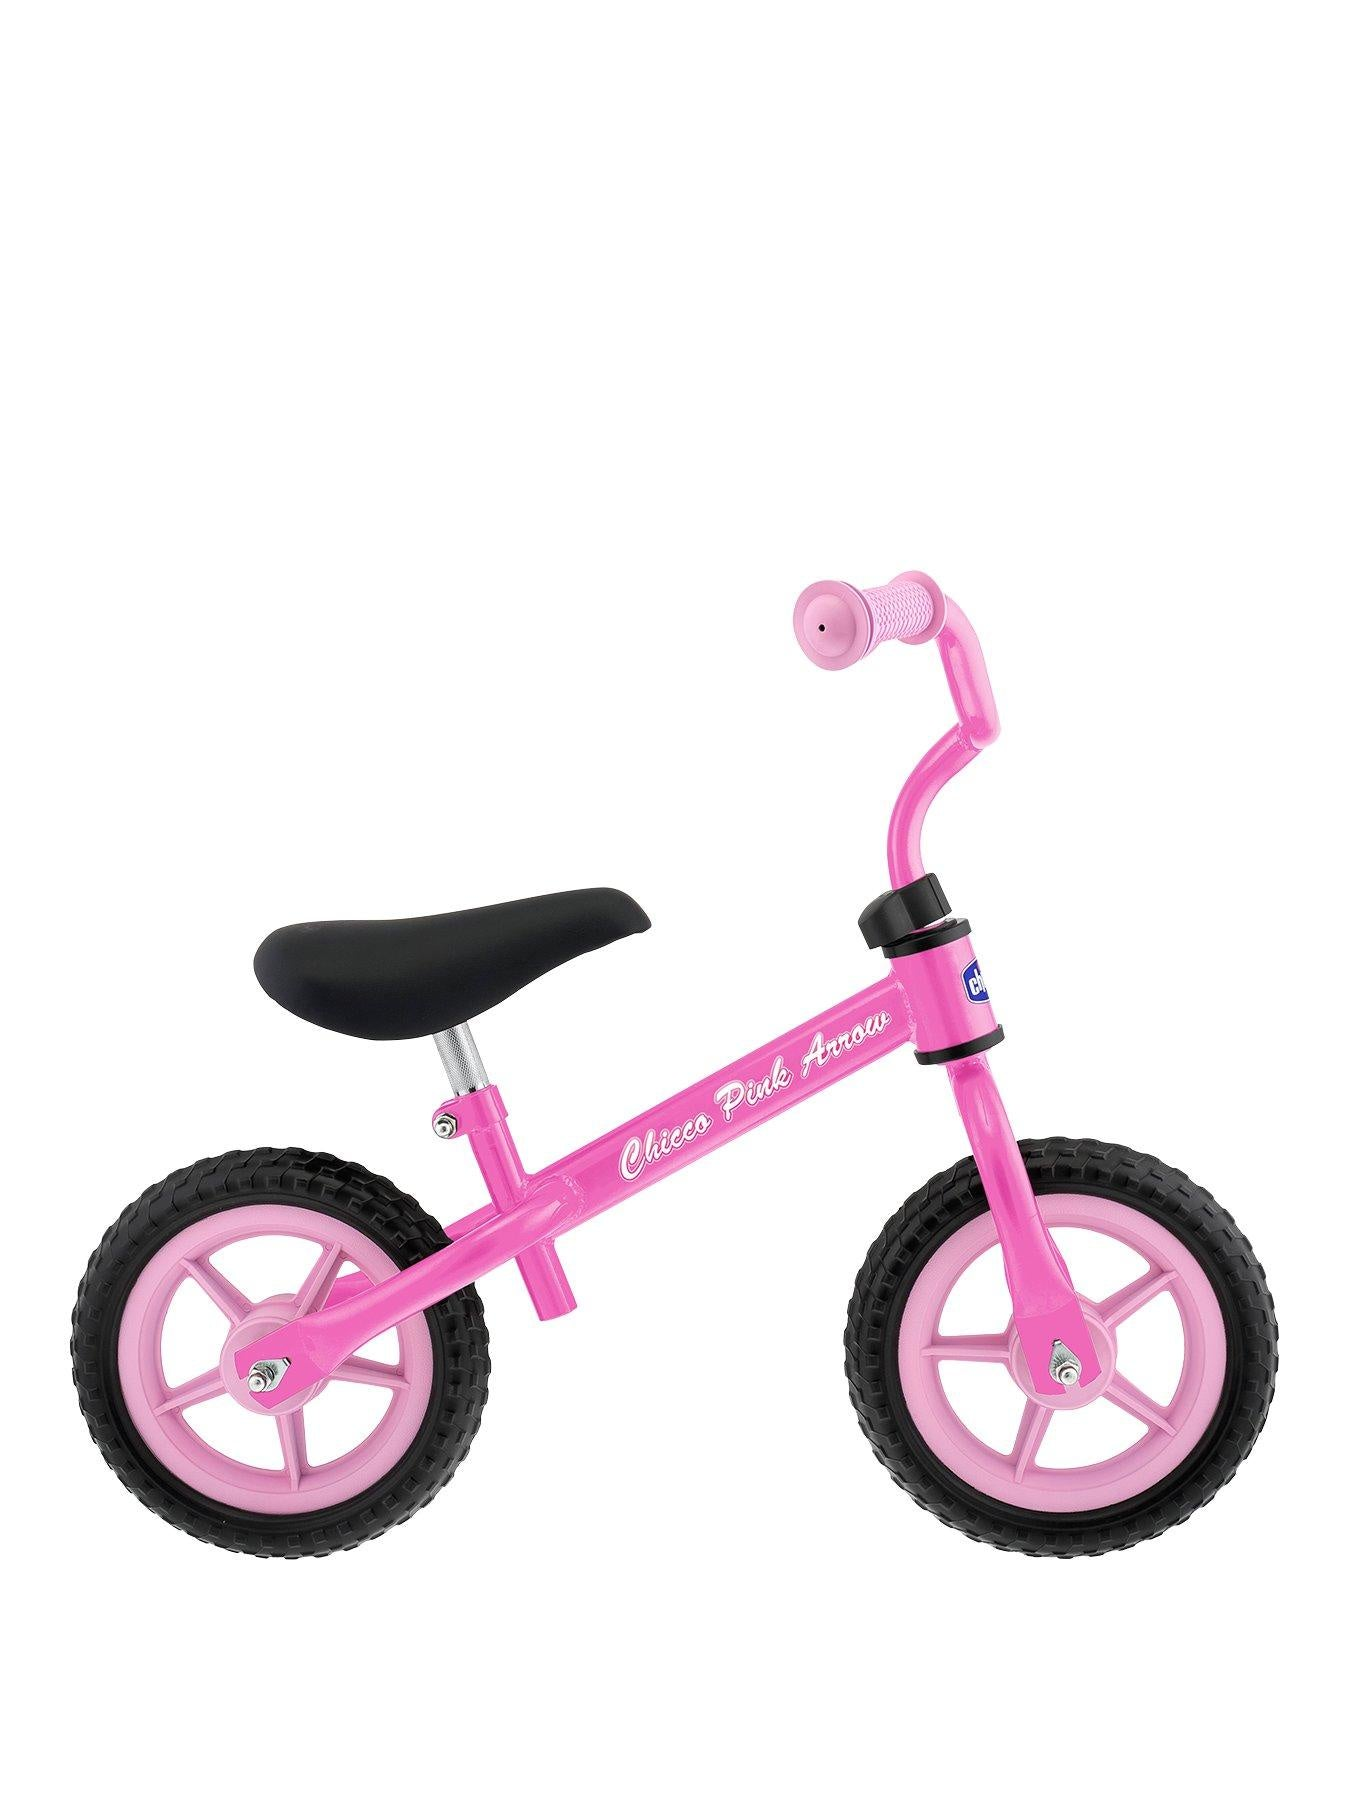 "Chicco Pink Arrow 10"" Balance Bike"